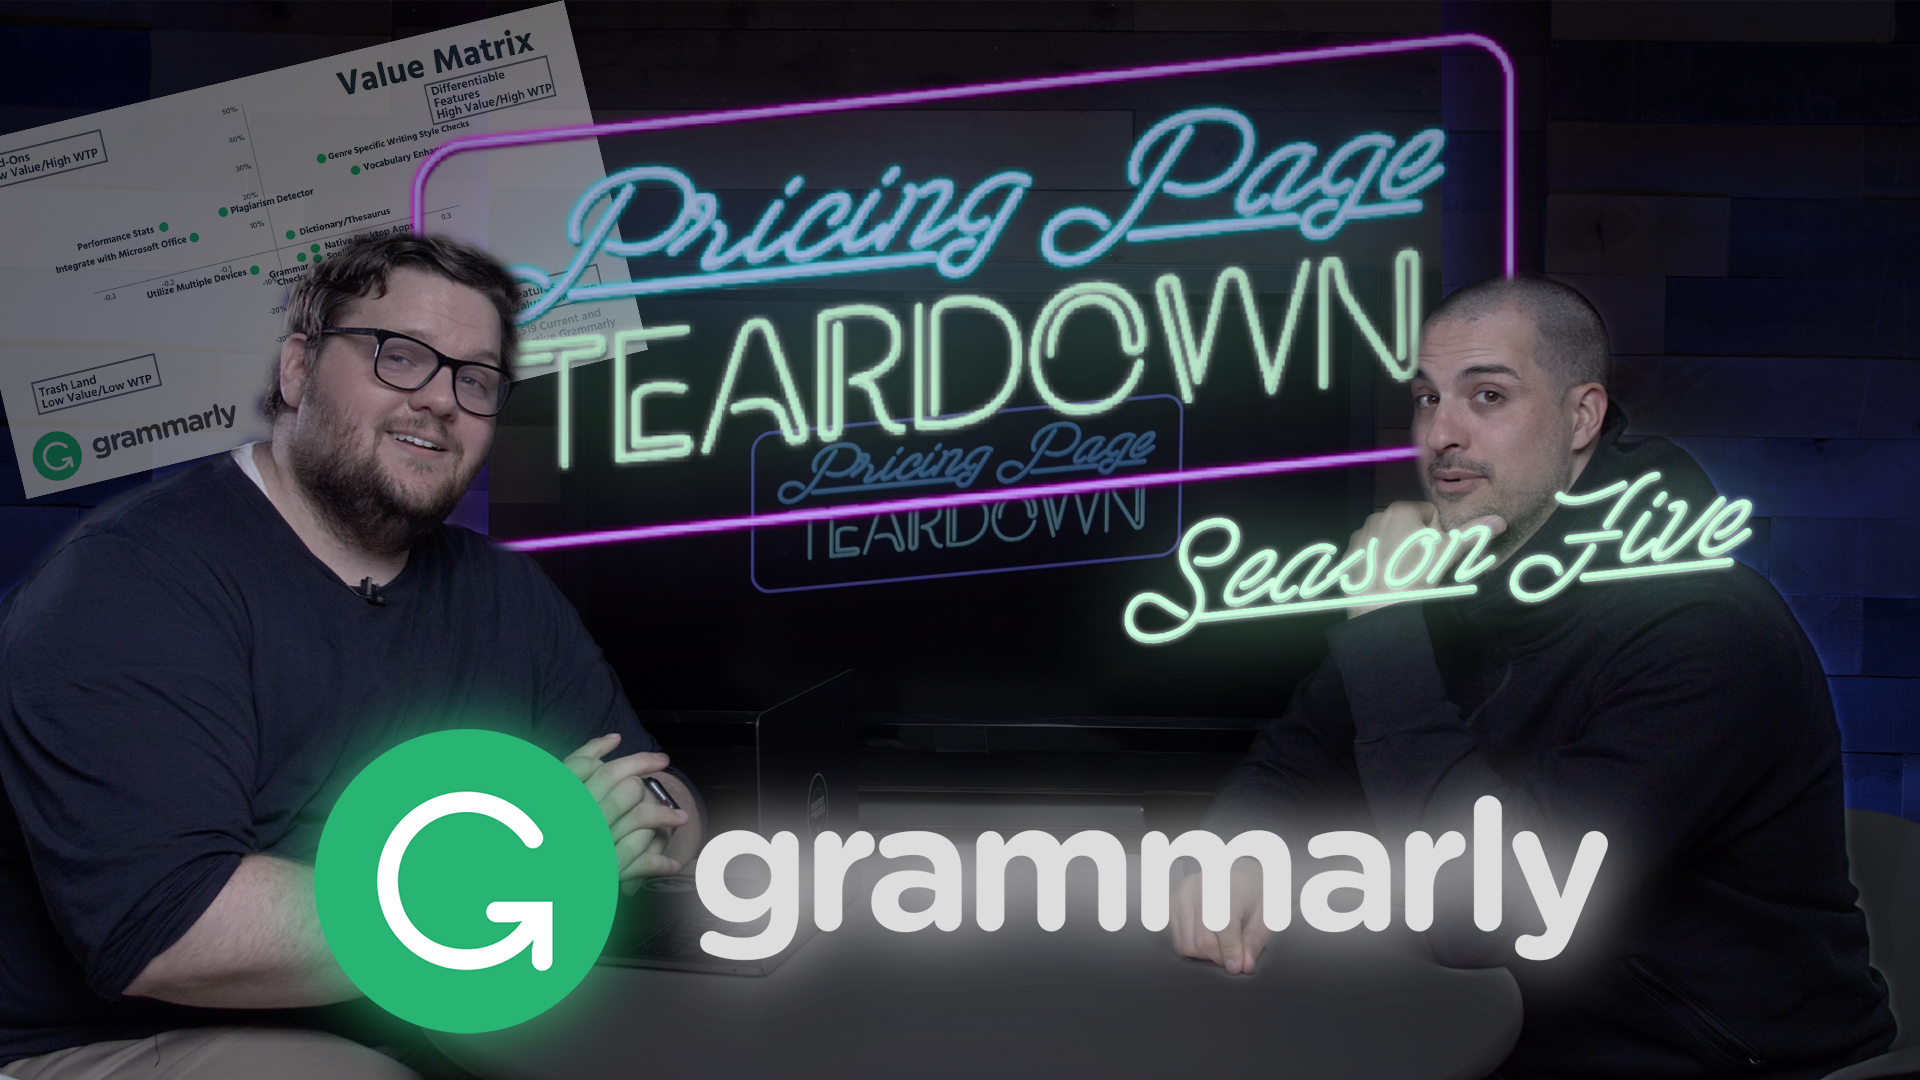 Pricing Page Teardown Episode 59: Grammarly